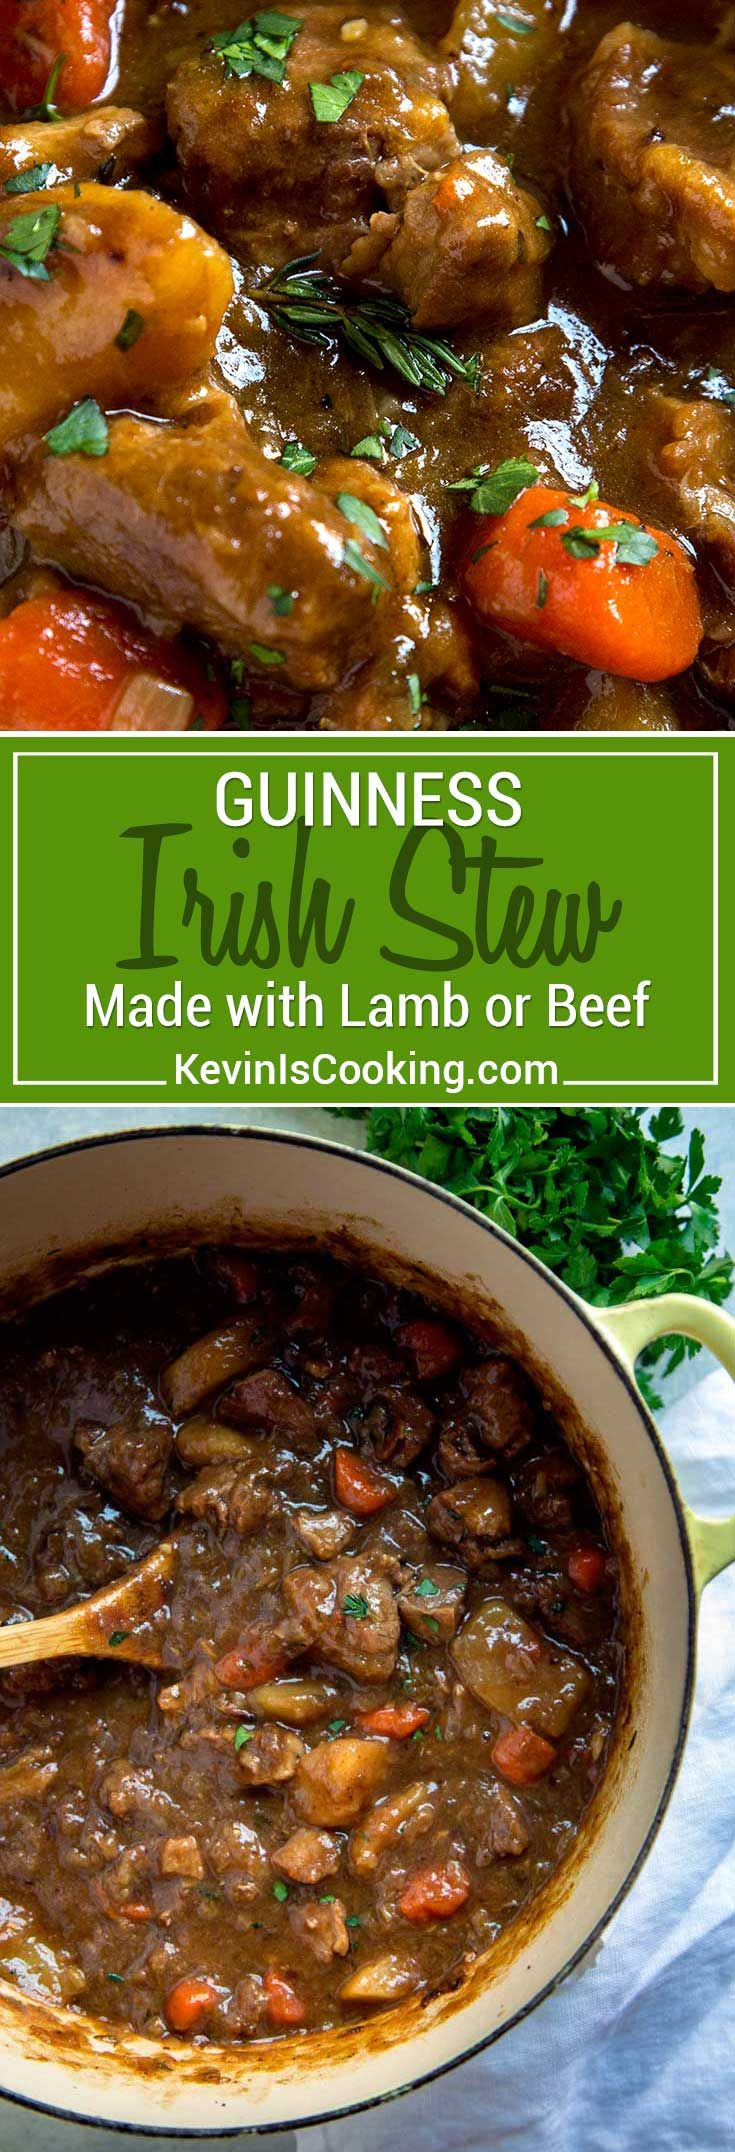 St. Patrick's Day doesn't mean just serving up corned beef. This Guinness Irish Stew is a great alternative with an incredibly rich, thick broth. Lamb or beef get layered with flavors due to a slow braise in Guinness beer, vegetables and herbs. Plus it's made all in one pan! #stew #Irish #Guinness via @keviniscooking